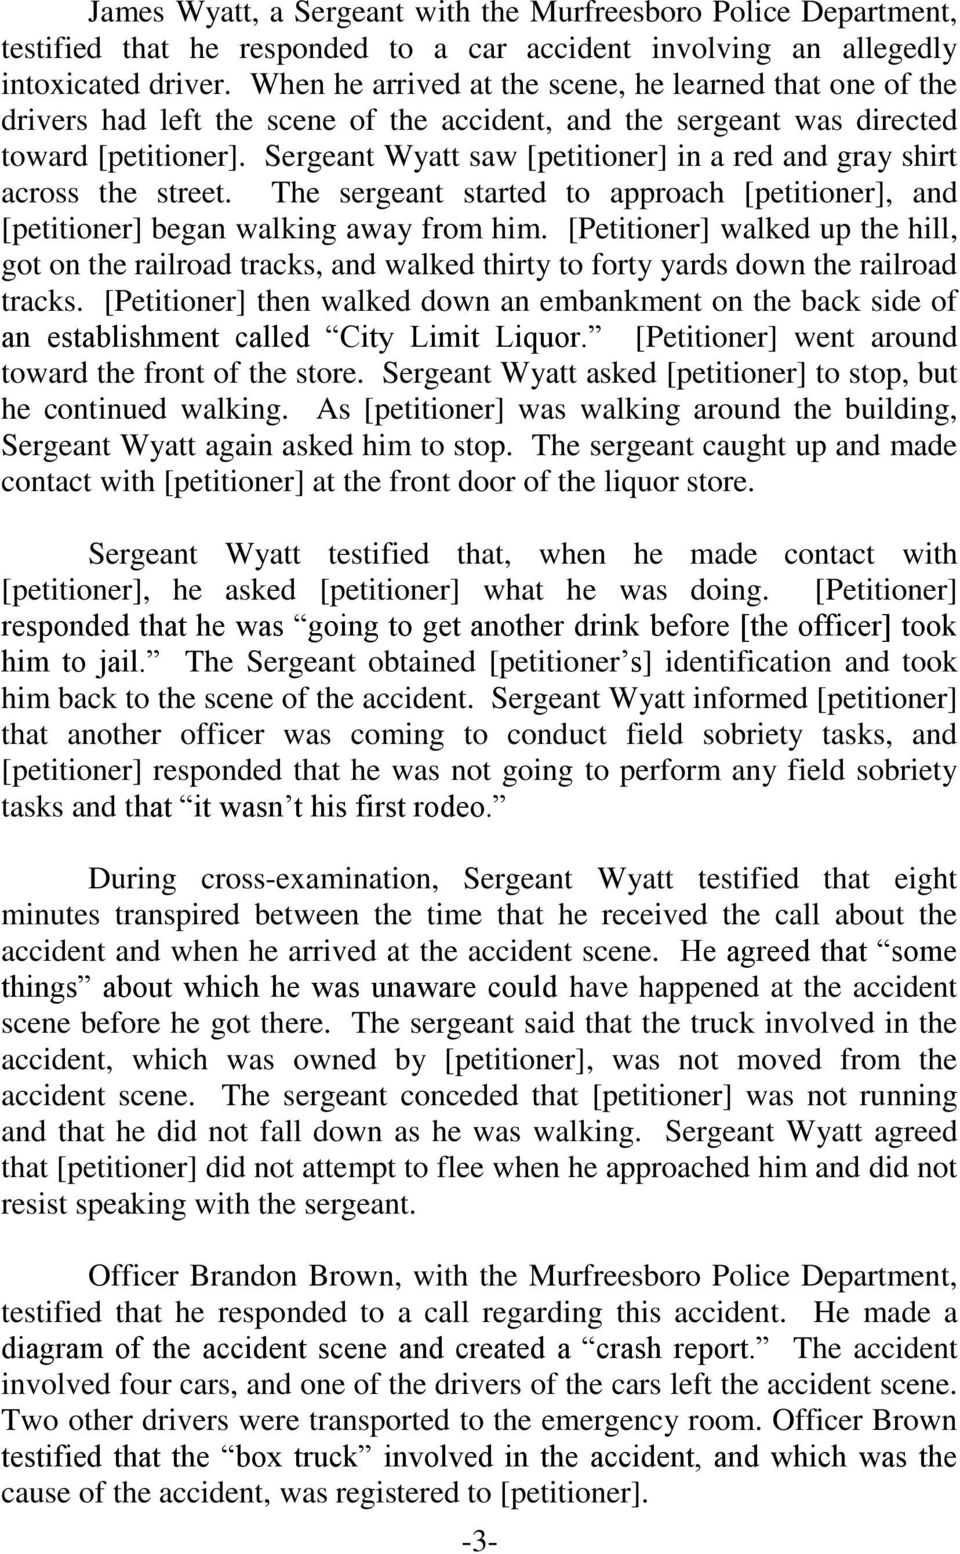 Sergeant Wyatt saw [petitioner] in a red and gray shirt across the street. The sergeant started to approach [petitioner], and [petitioner] began walking away from him.